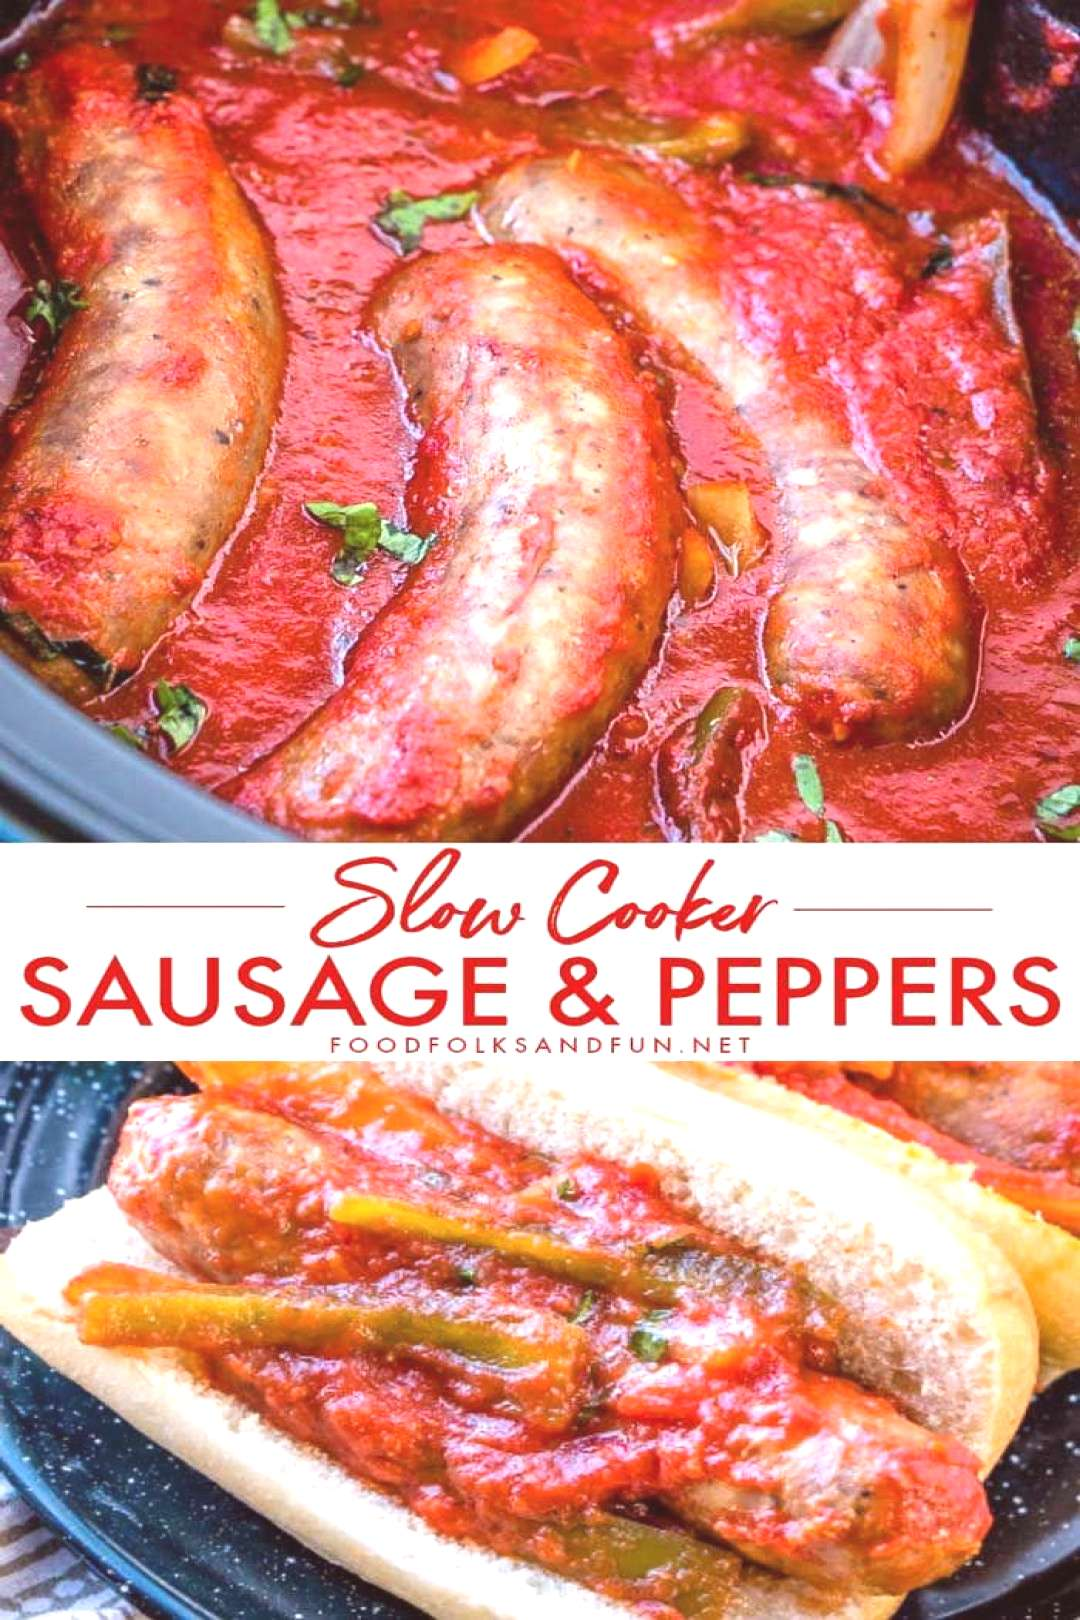 SLOW COOKER Sausage and Peppers Sausage and Peppers is a classic Italian-American comfort food dish